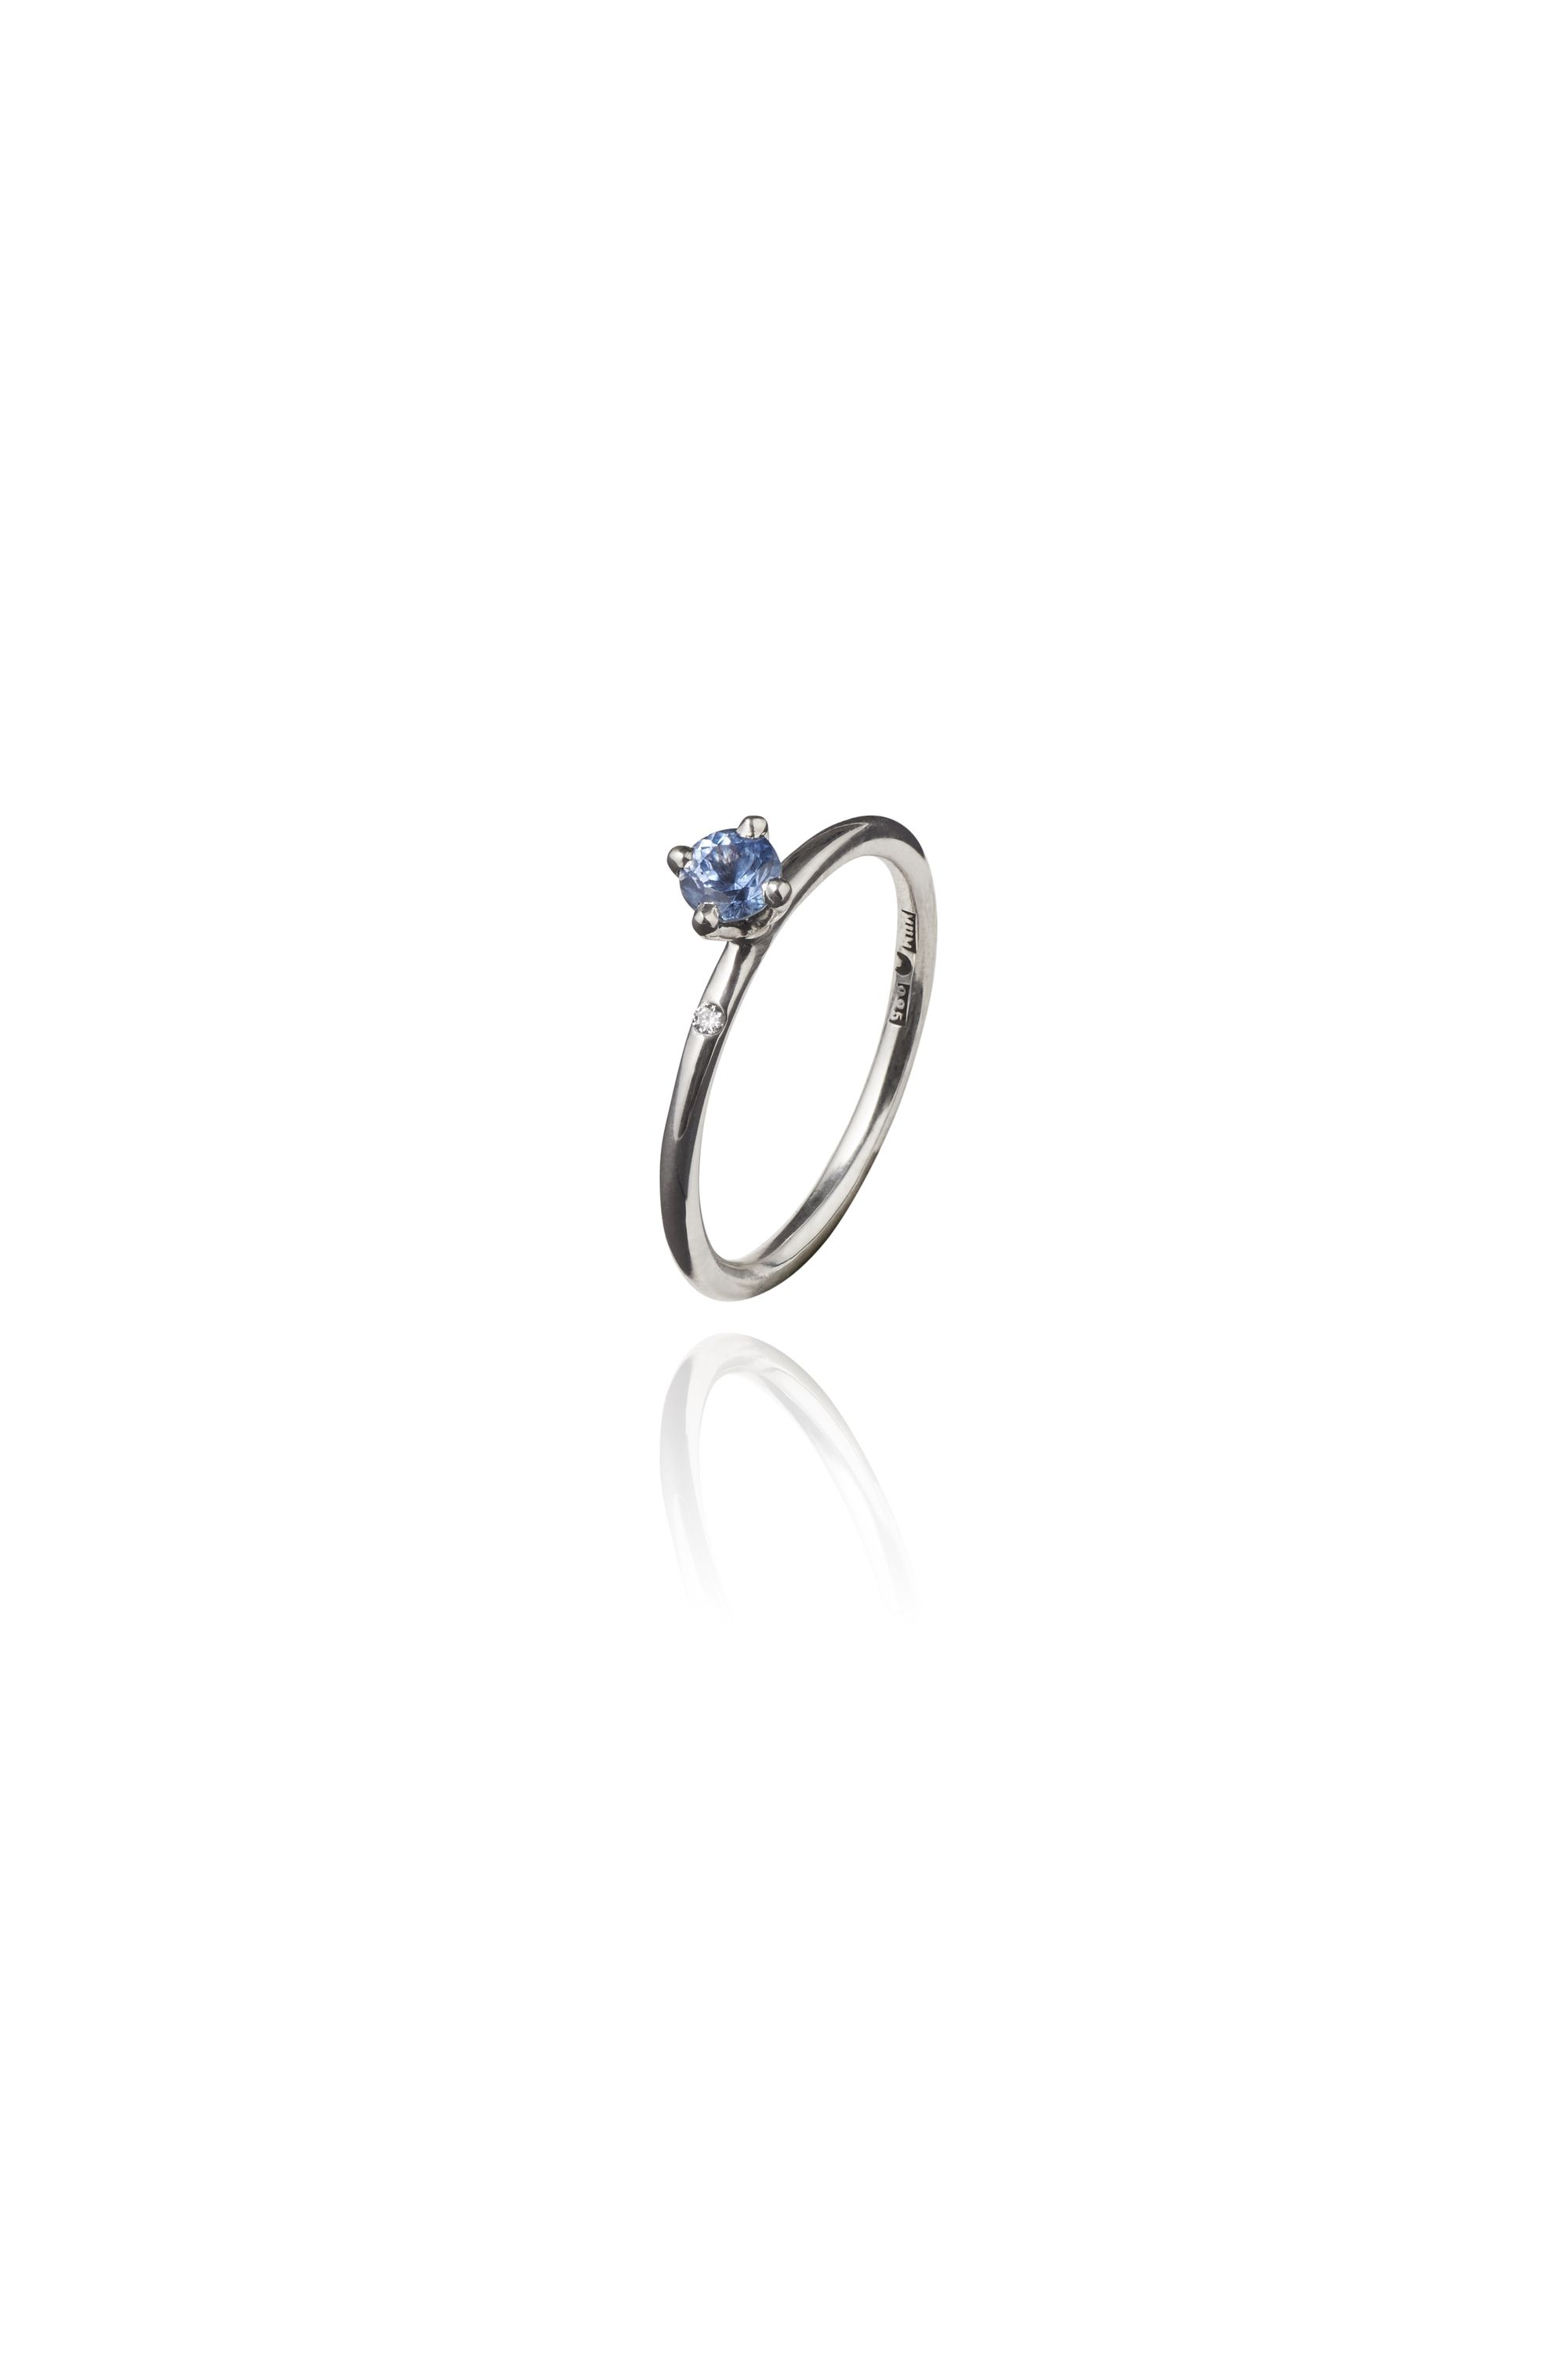 blue engagement light products edition limited ring ethical gemstone gold alebrusan white foliage fairtrade sapphire